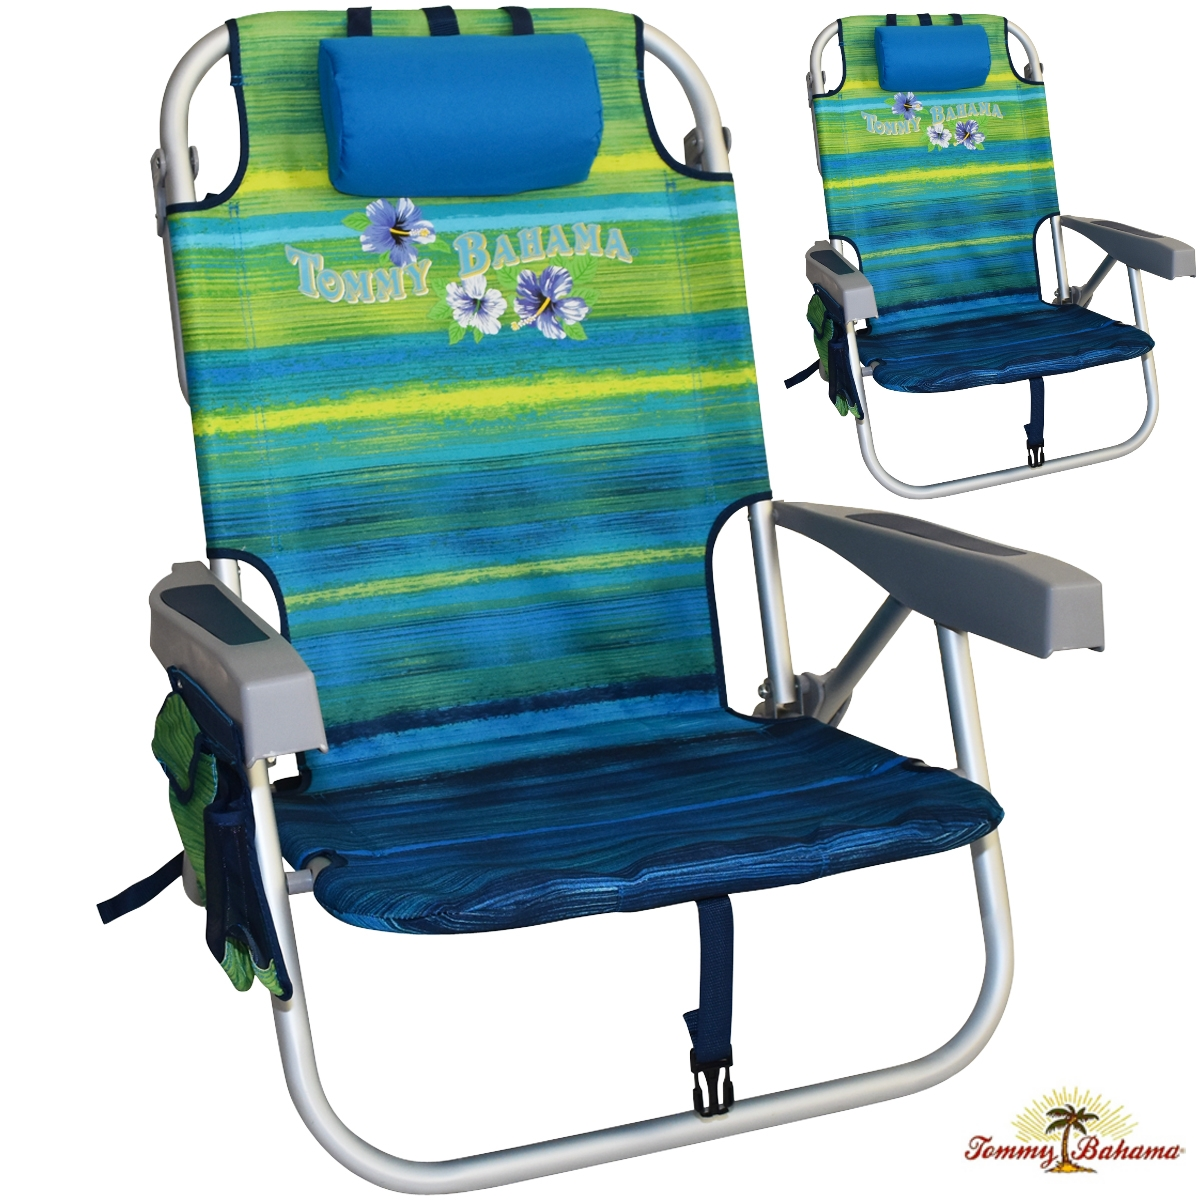 Backpack Beach Chair With Cooler 2 Tommy Bahama Backpack Cooler Beach Chairs With Towel Bar